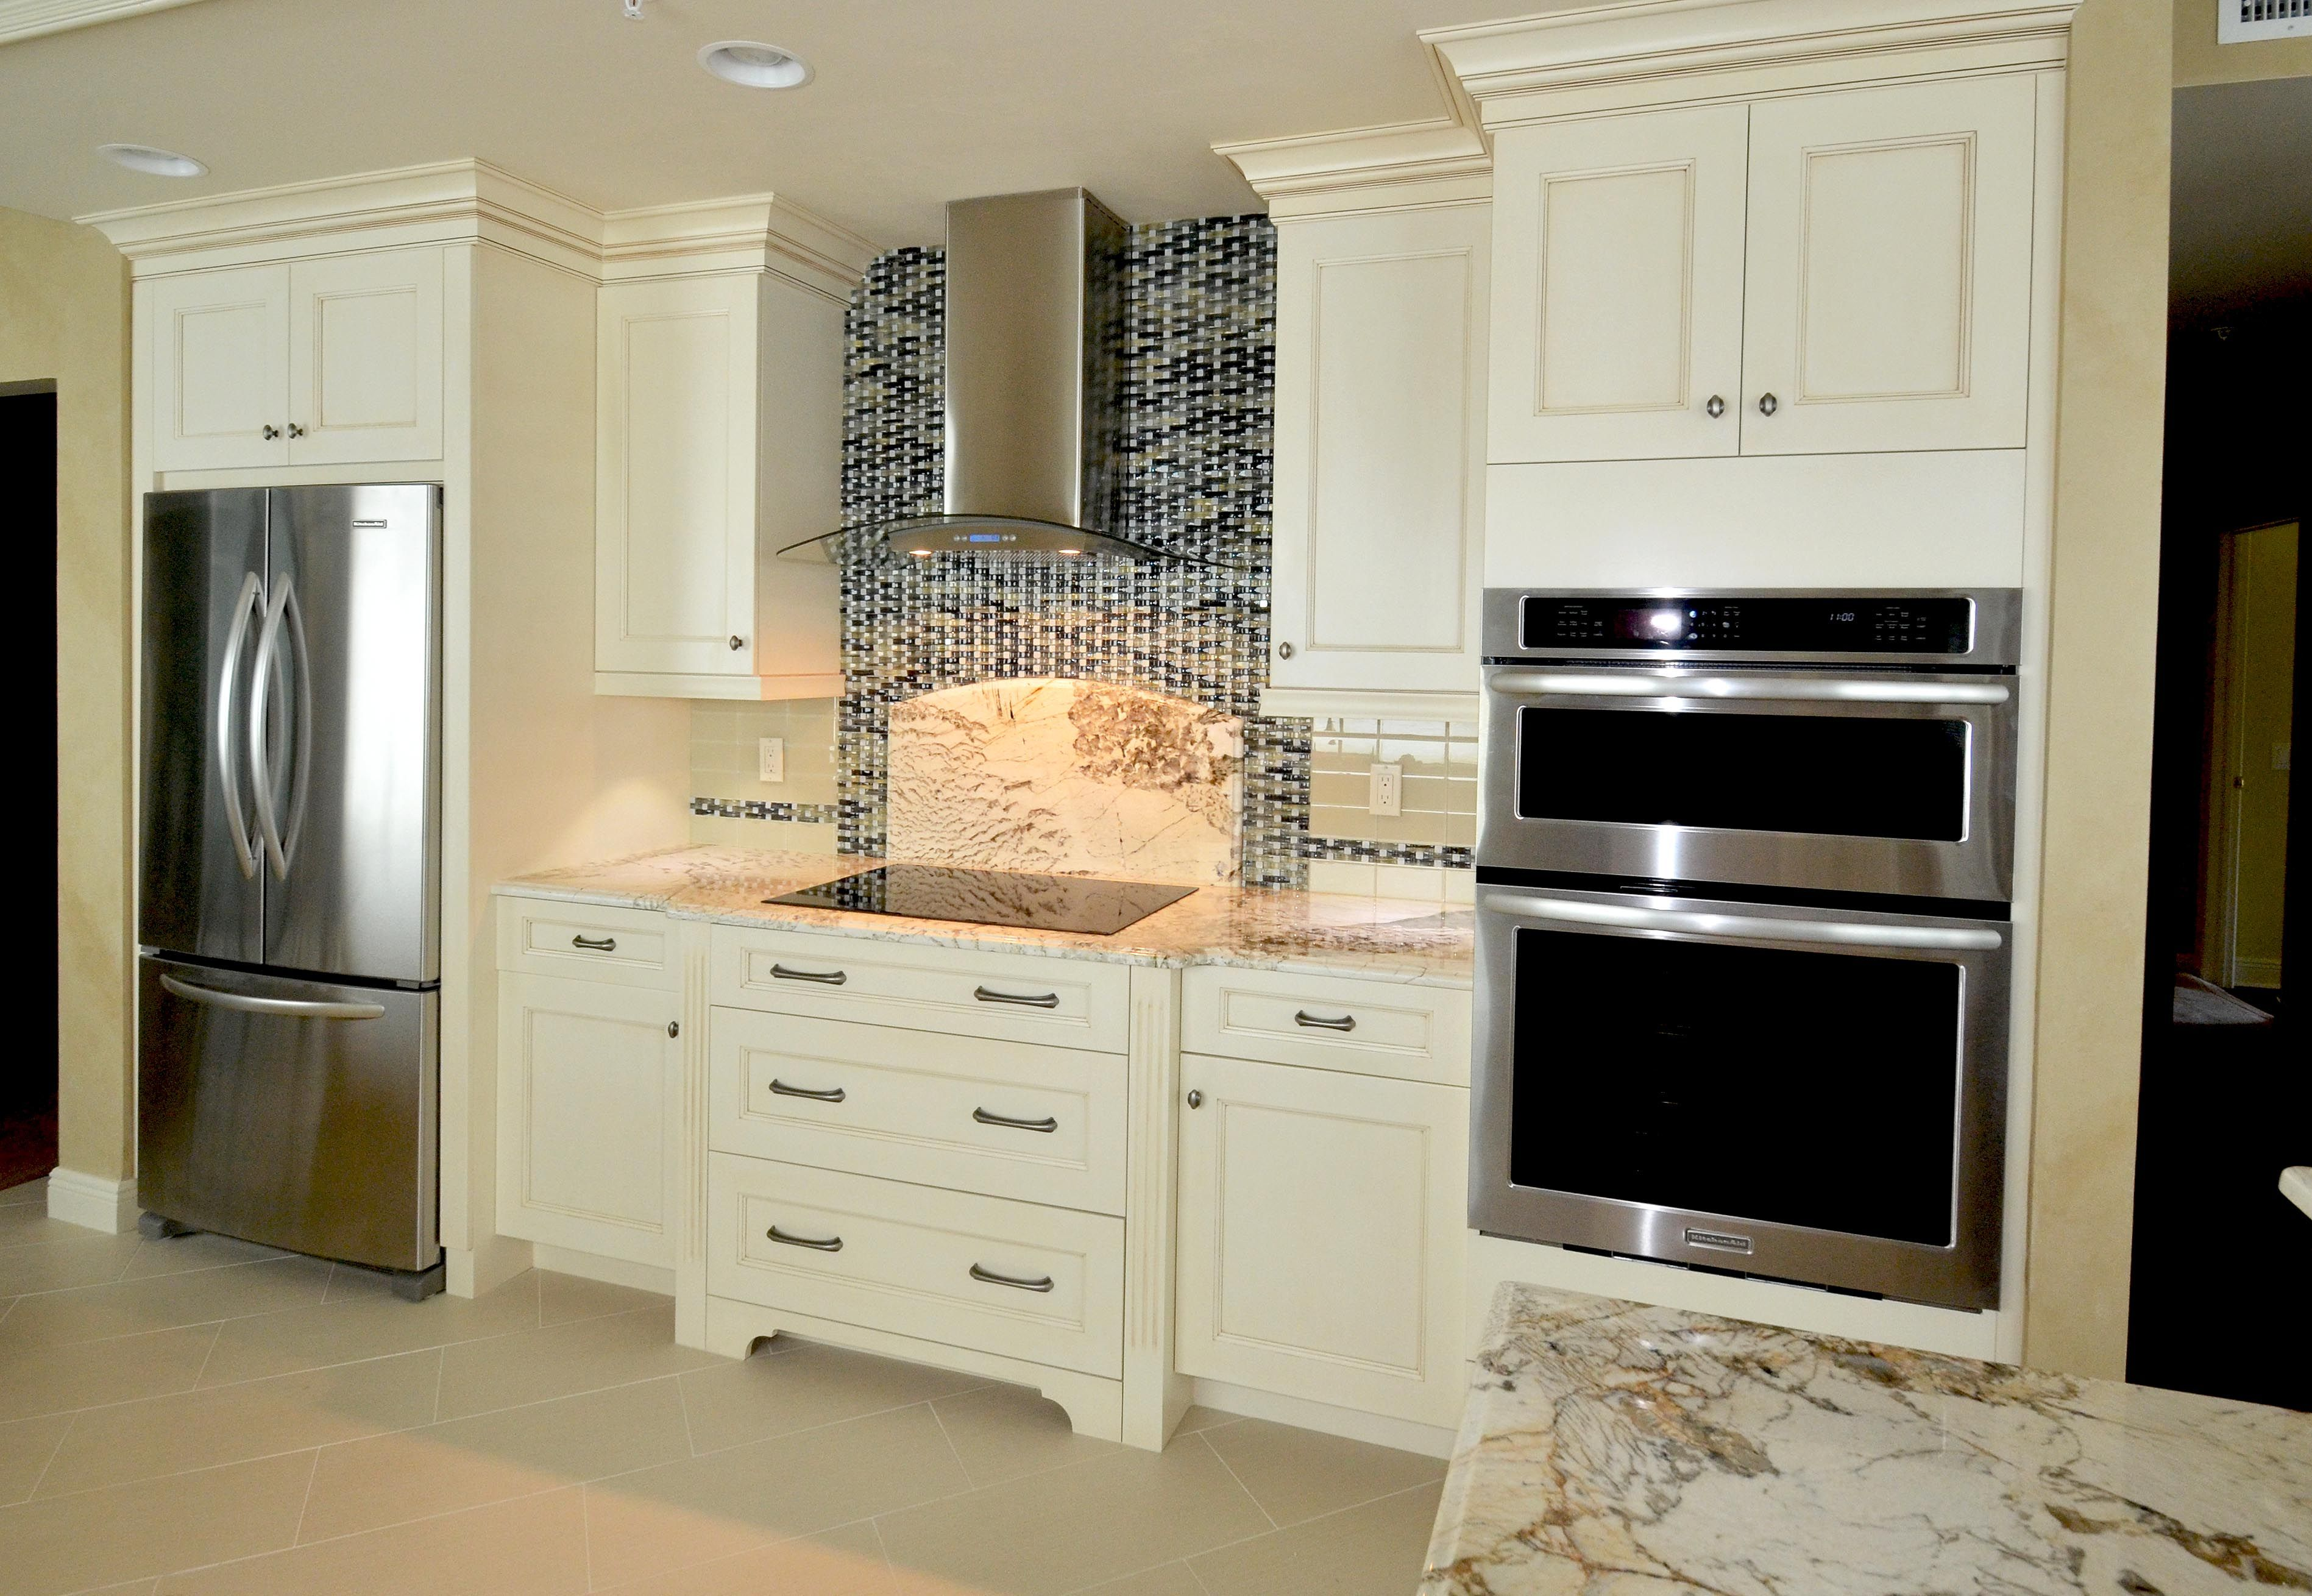 Outdoor kitchen in Naples, FL by Da Vinci Cabinetry